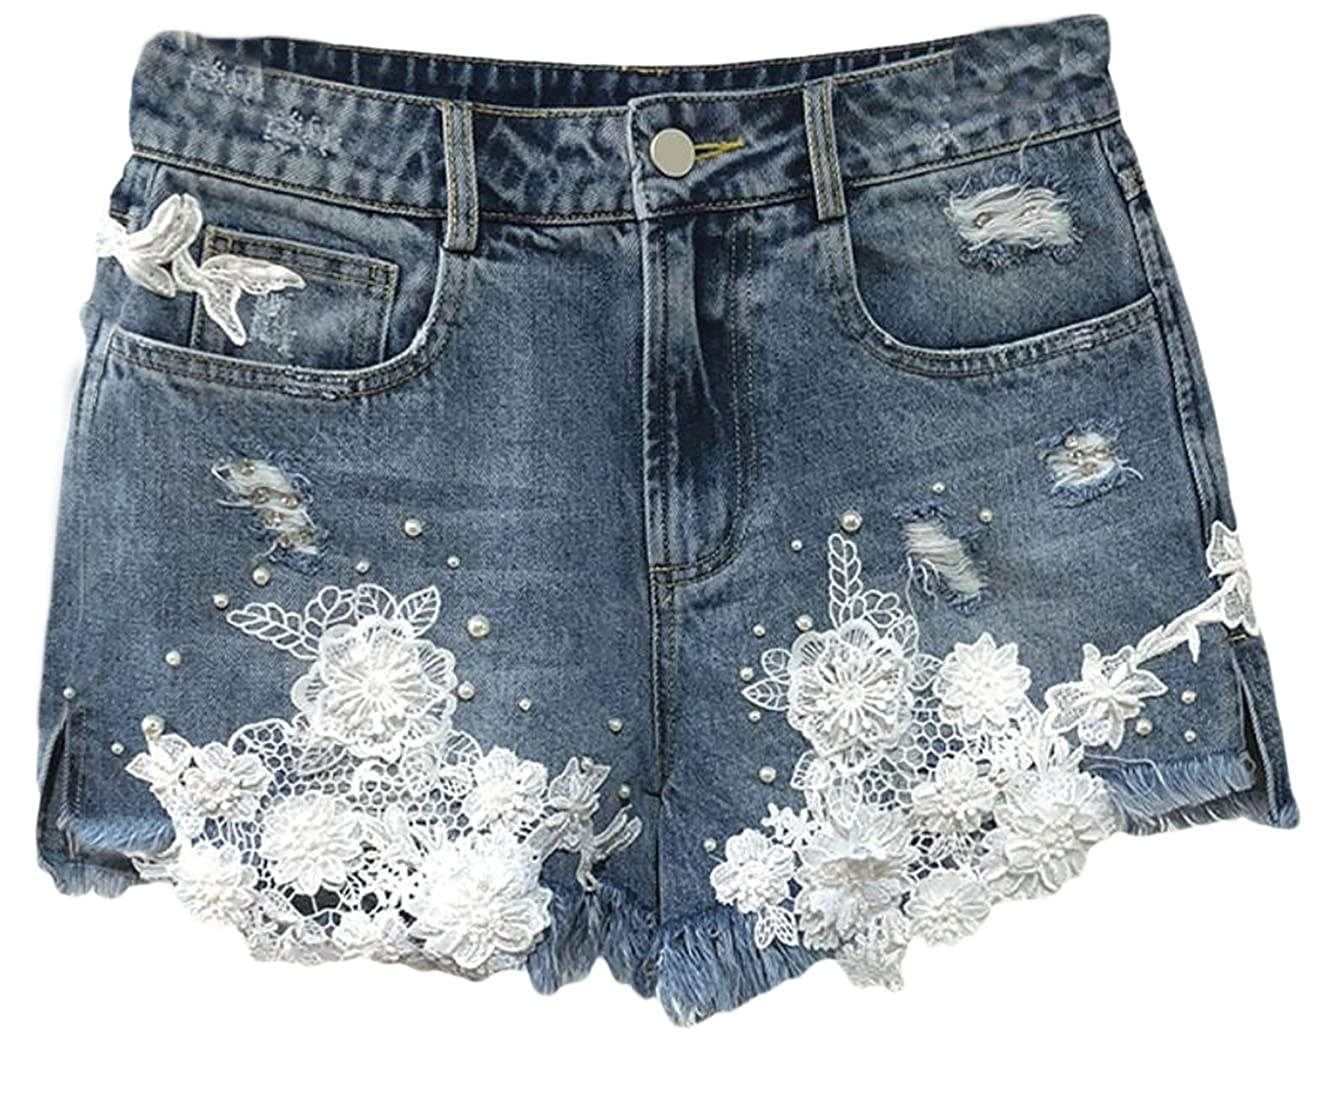 bluee Yayu Women Denim Shorts,Fashion Print Lace Splice High Waist Denim Shorts